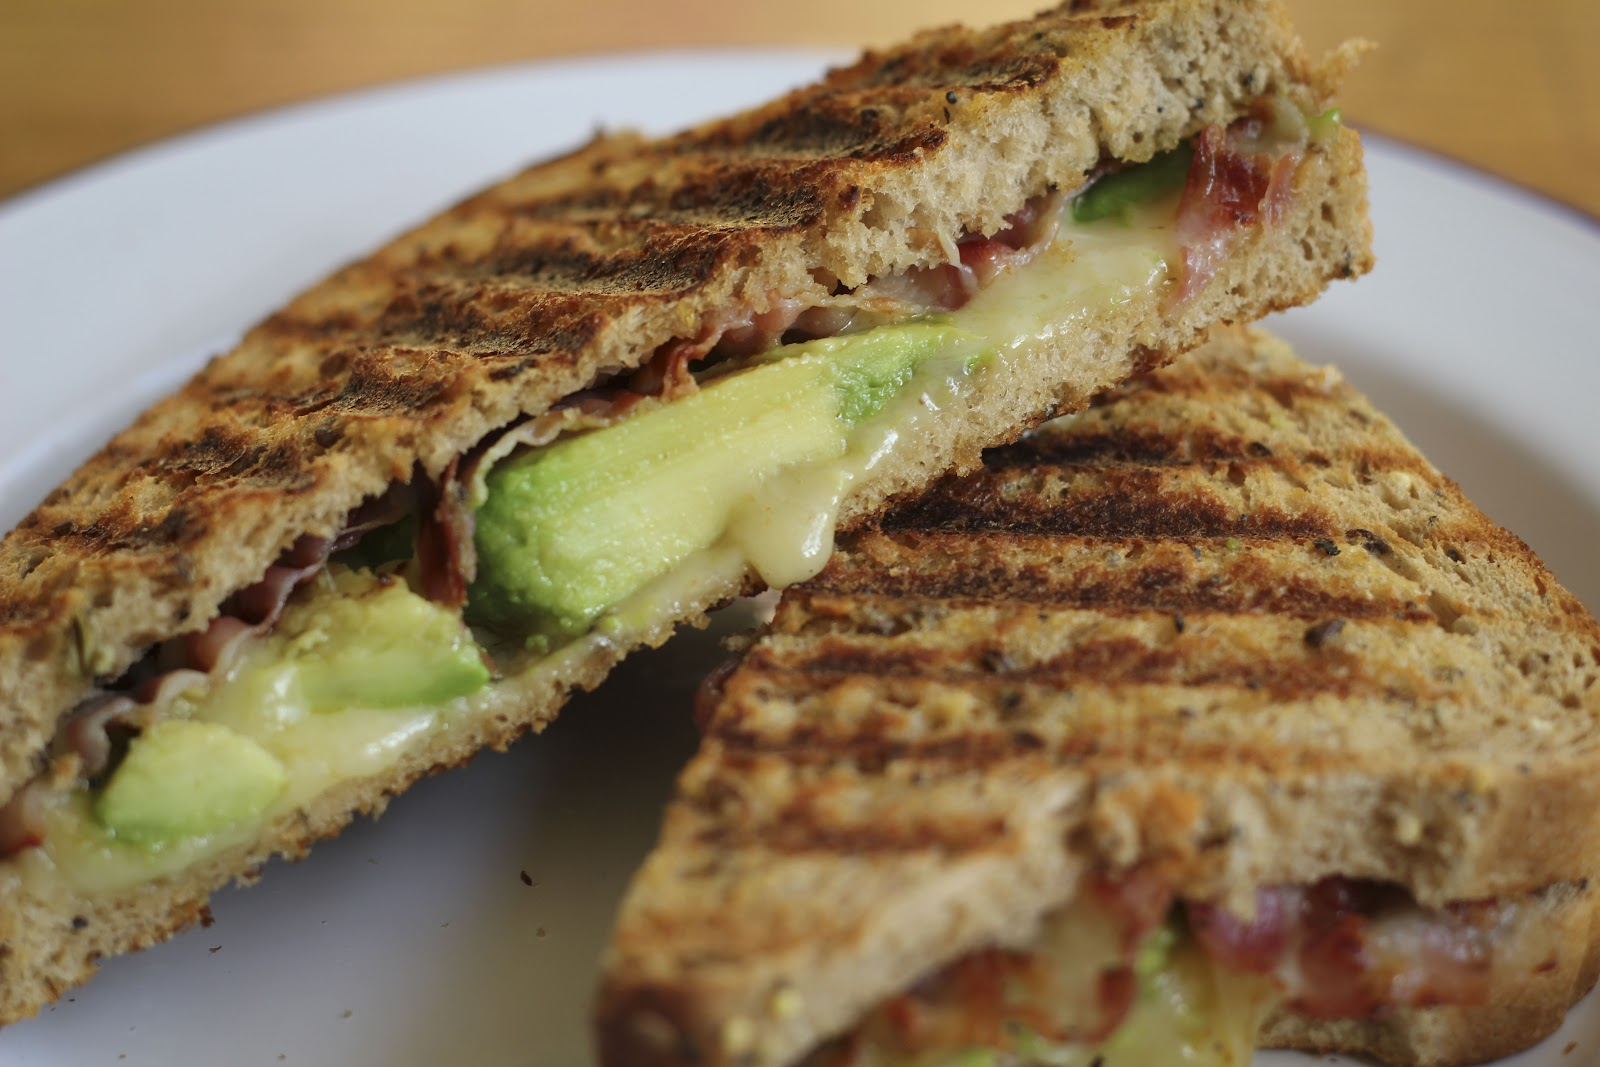 miss igs: Avocado & Bacon Grilled Cheese Sandwich